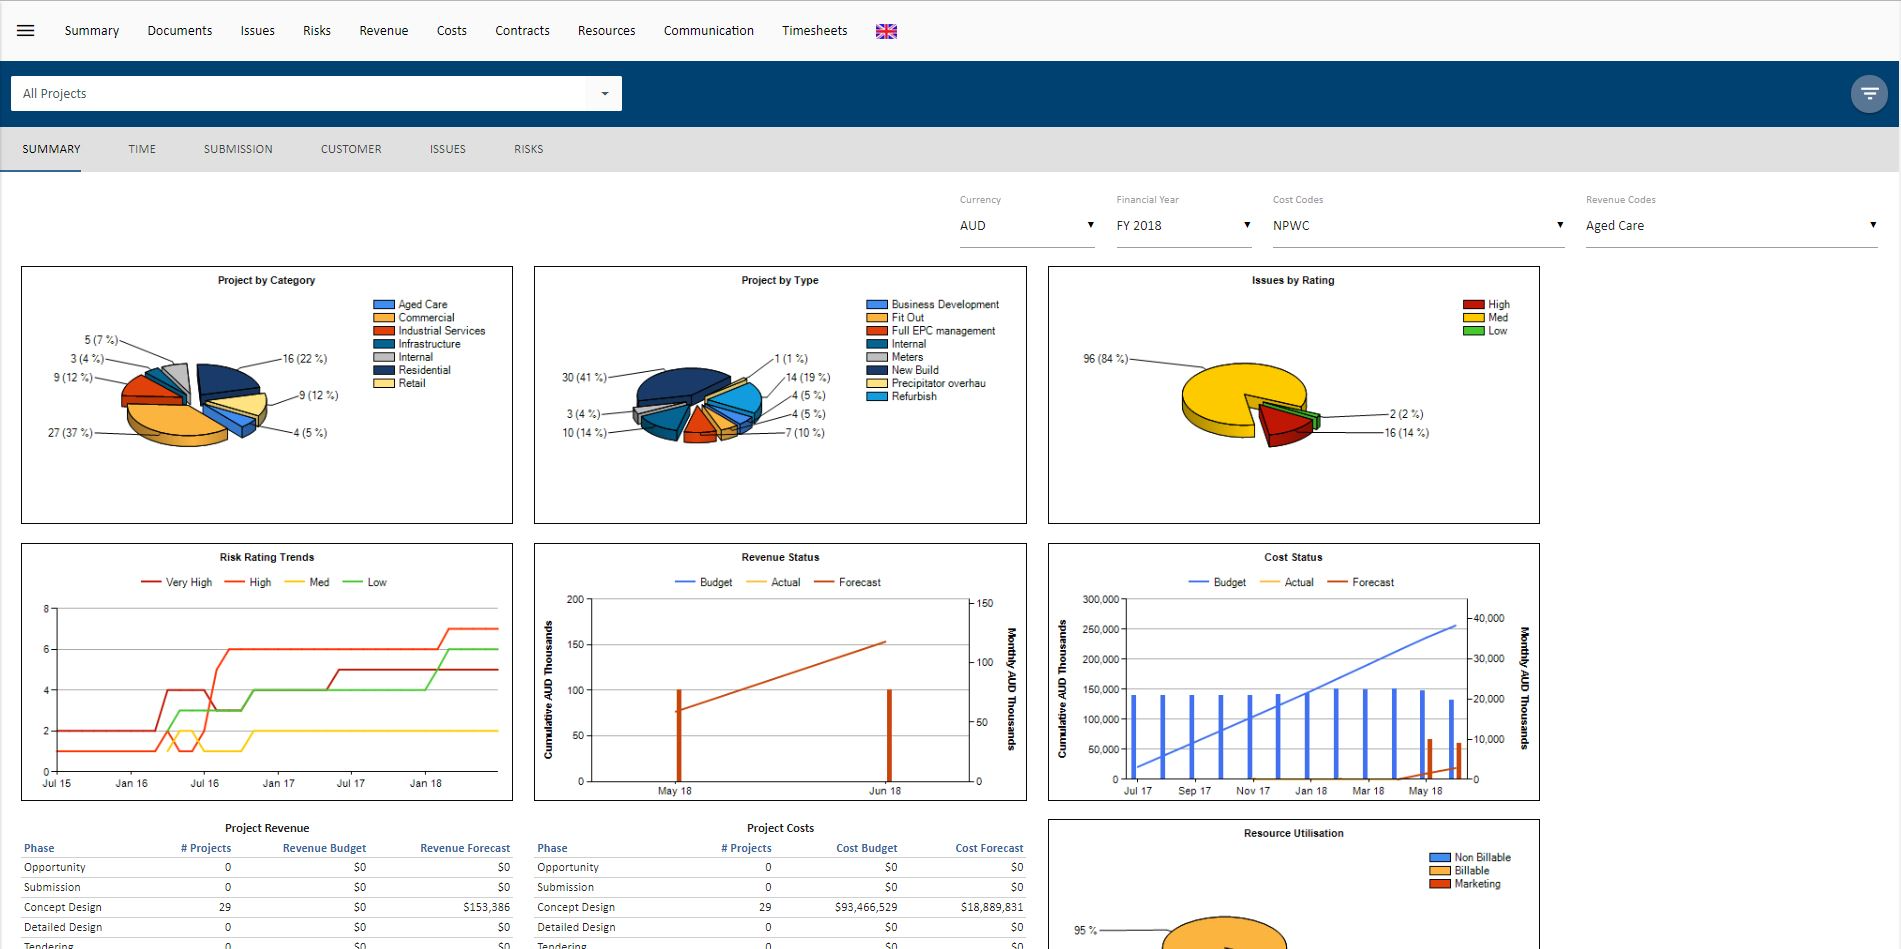 Generate summary, time or submission reports & visualize data